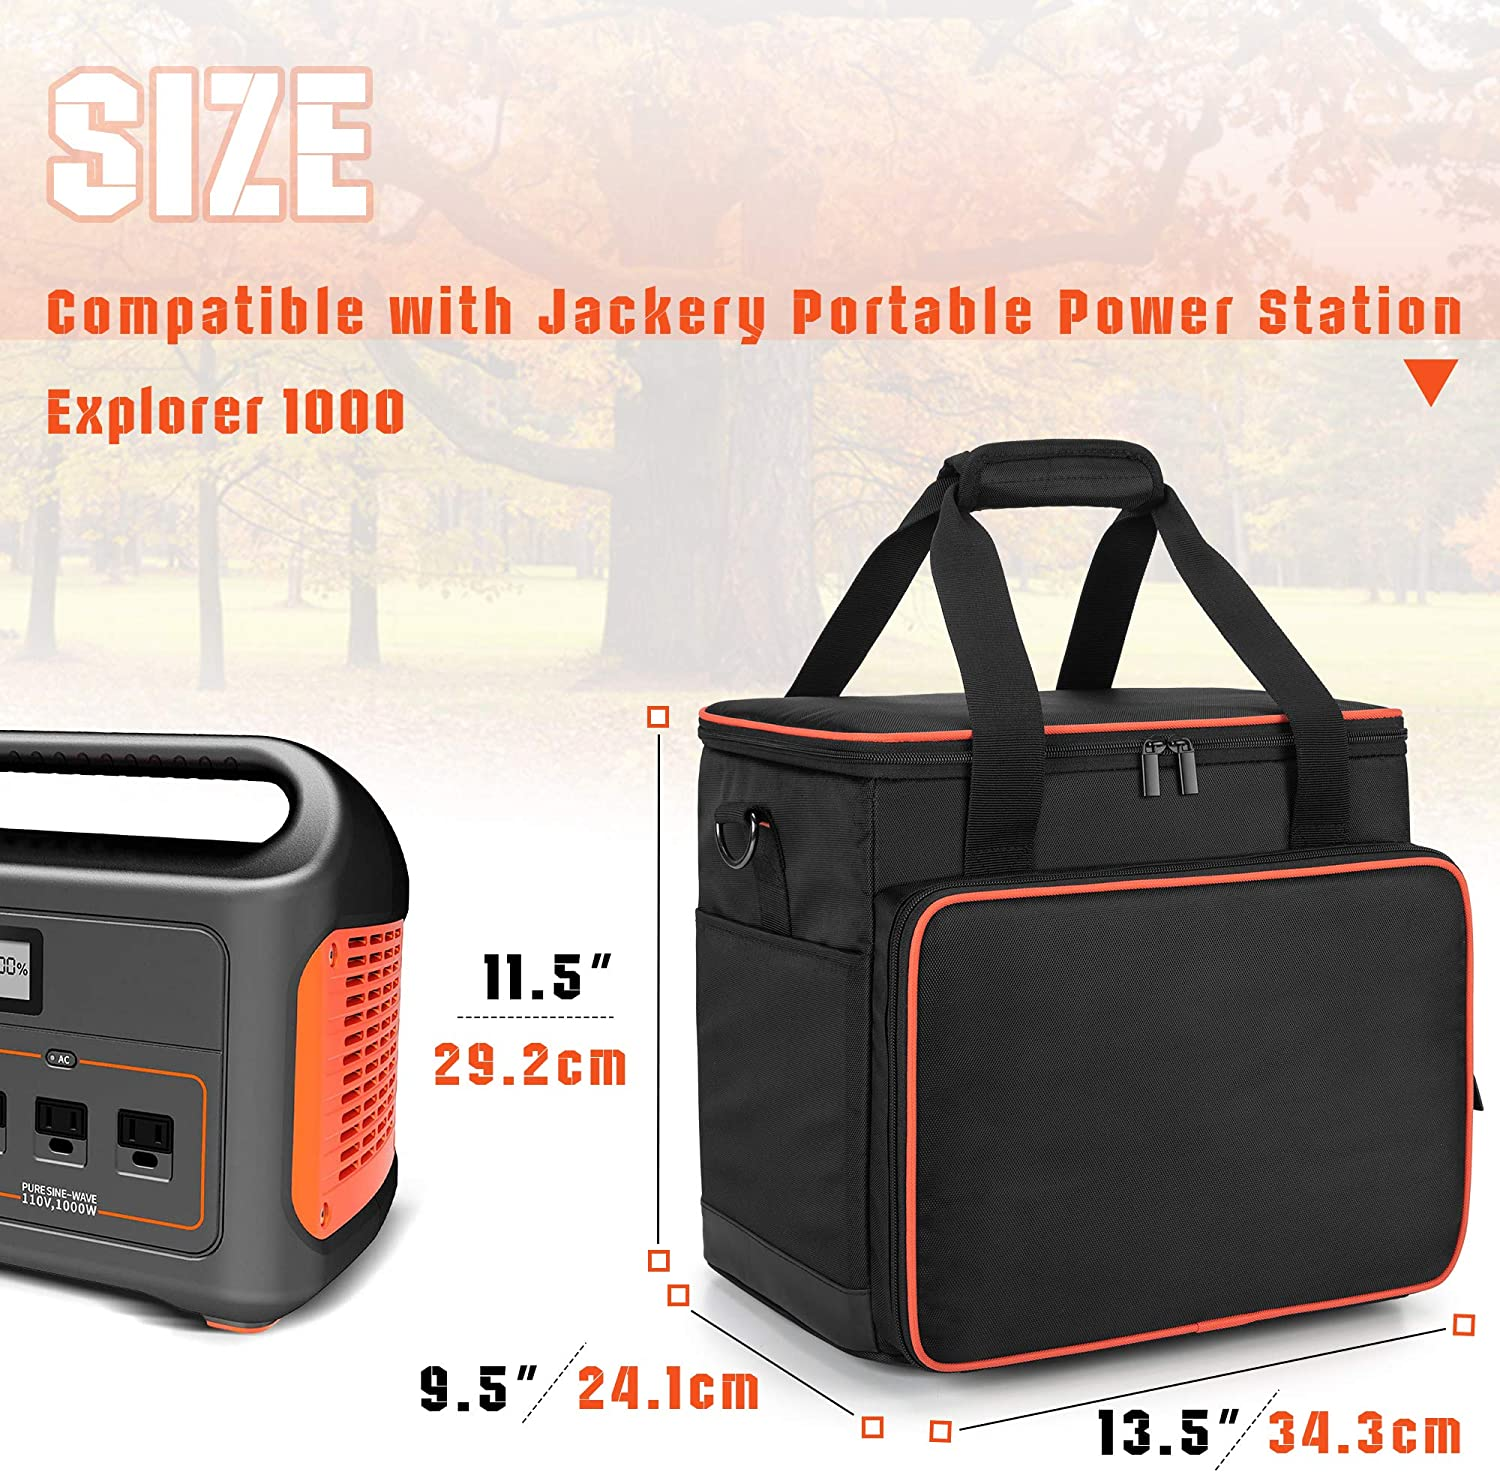 Trunab Travel Carrying Bag Compatible with Jackery Portable Power Station Explorer 160//240//300 Storage Case with Waterproof PU Bottom and Front Pockets for Charging Cable and Accessories